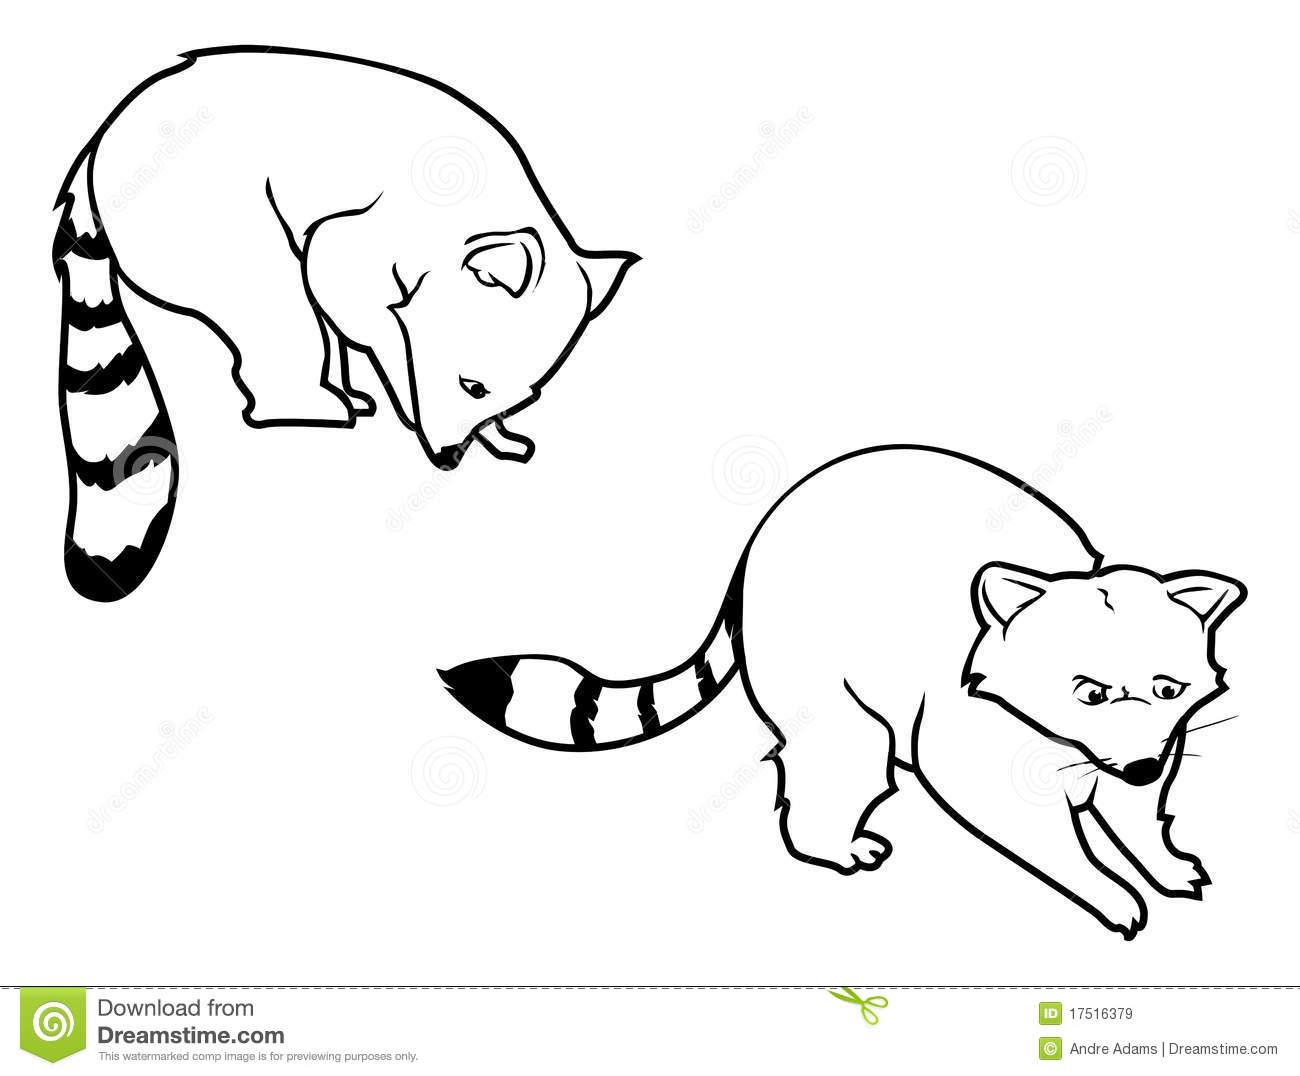 Raccoon Outlines Royalty Free Stock Images